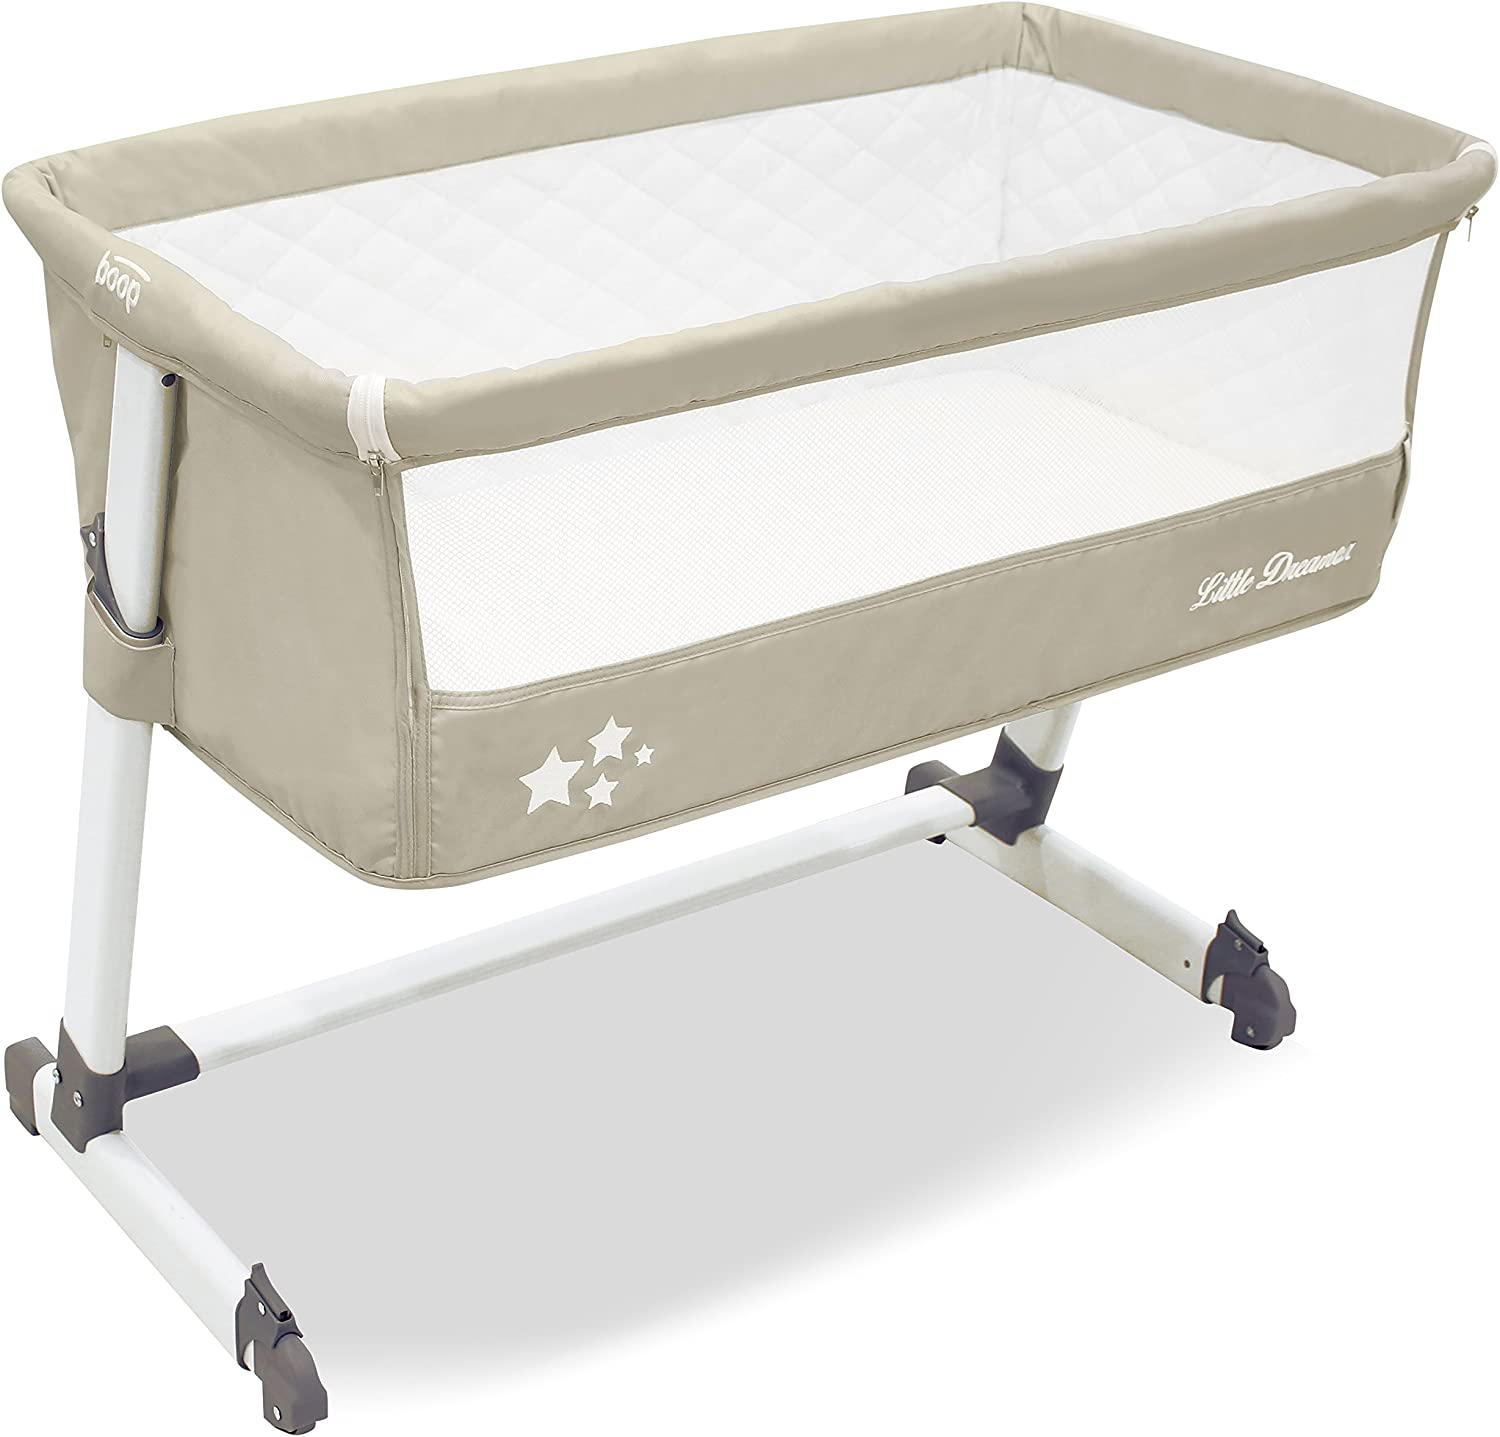 Asalvo 13439 Bed Side